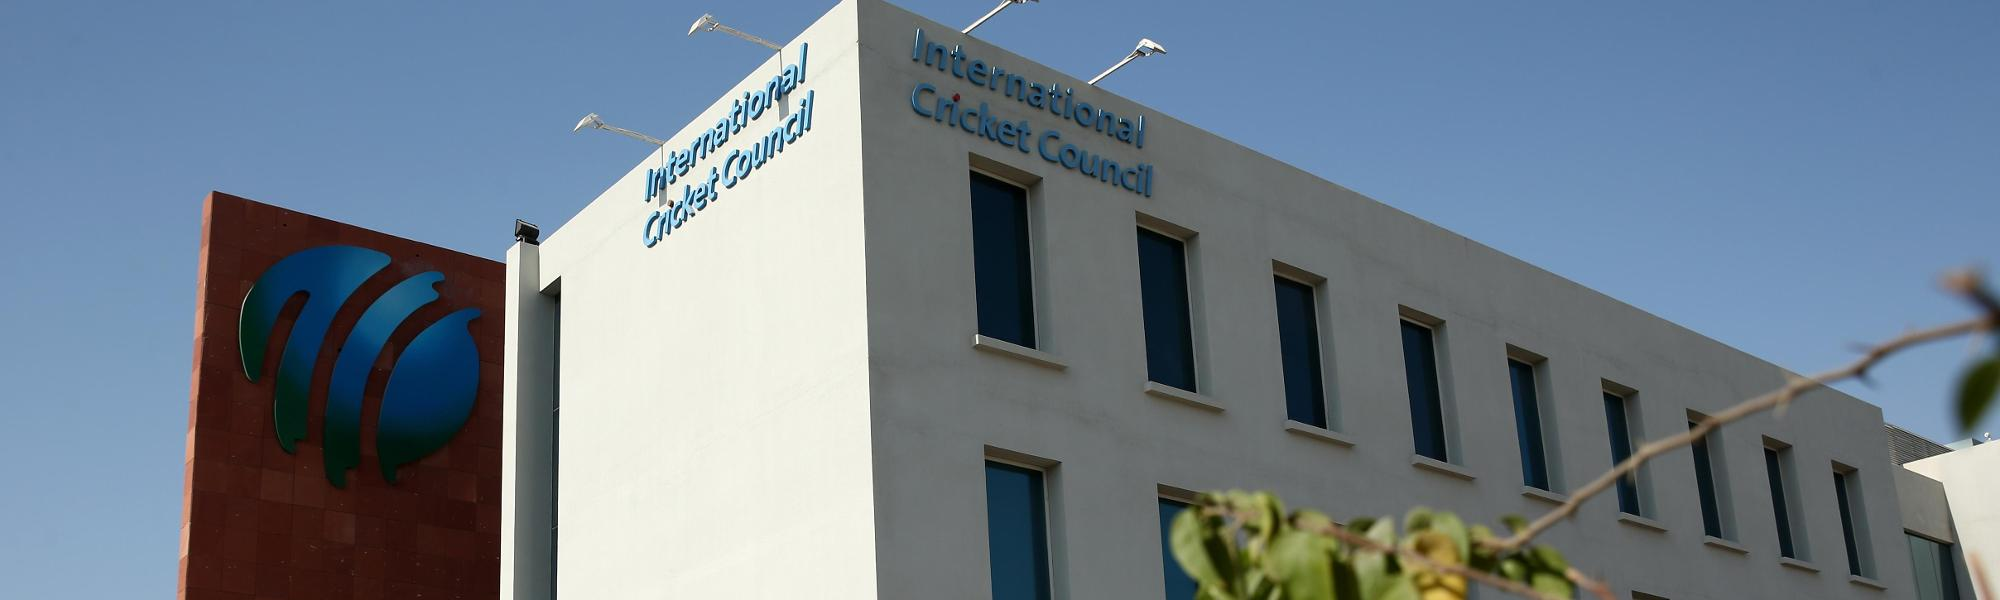 ICC Headquarters in Dubai